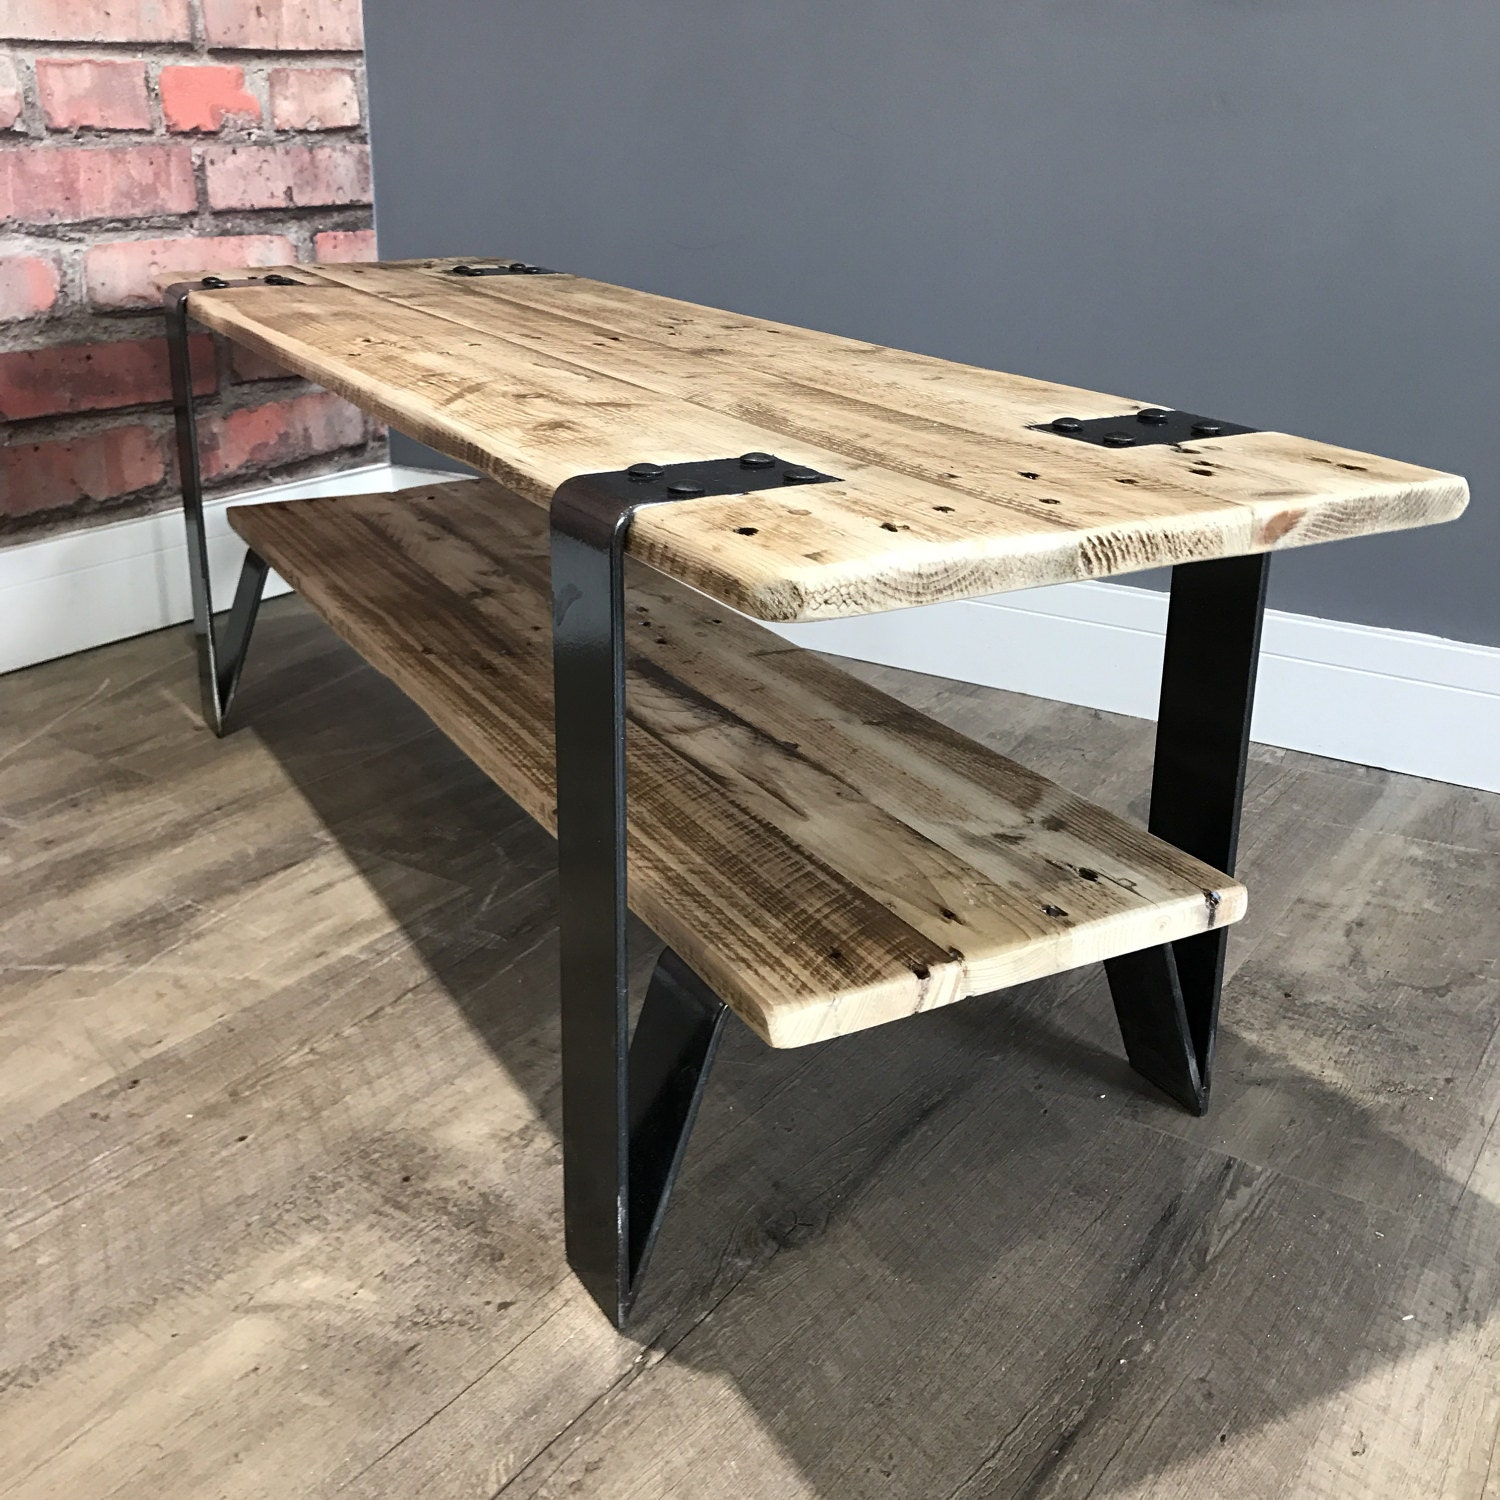 Reclaimed Industrial Pallet Wood Coffee Table With Steel